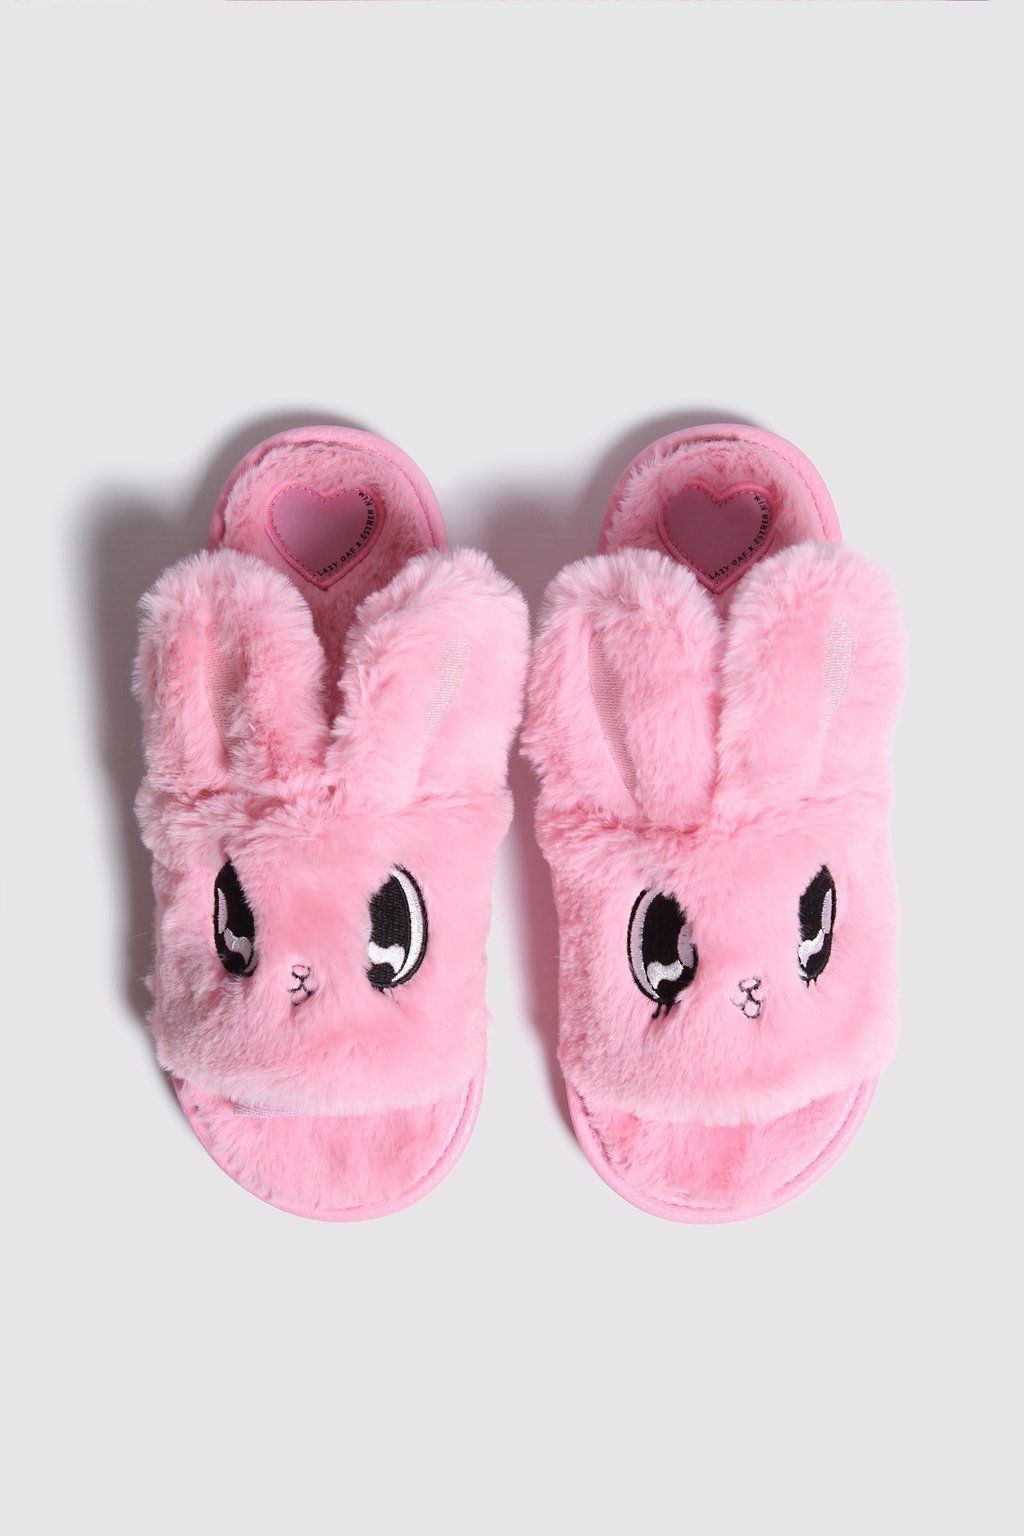 a2c1061024a0 Esther Loves Oaf Fluffy Bunny Slippers in 2019 | lo | Bunny slippers ...